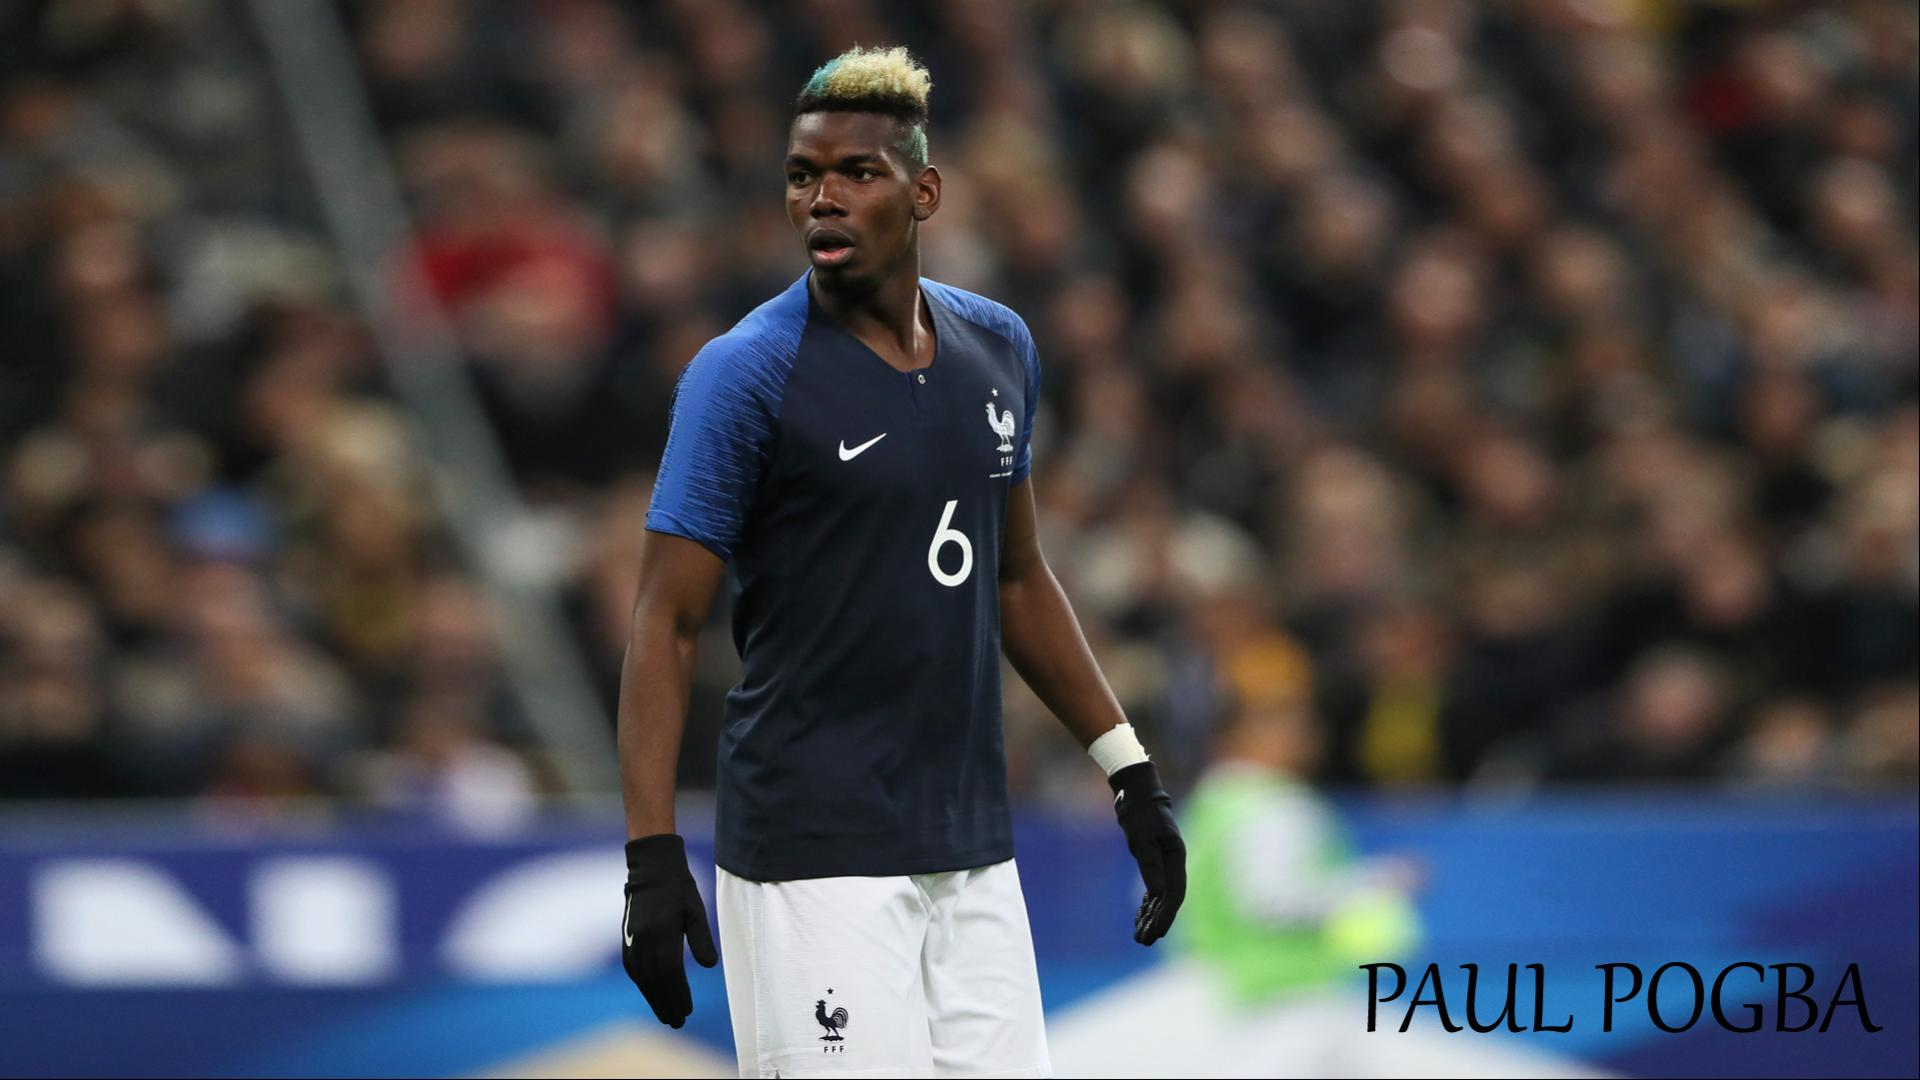 Paul Pogba With 2018 France Football Team Jersey For World